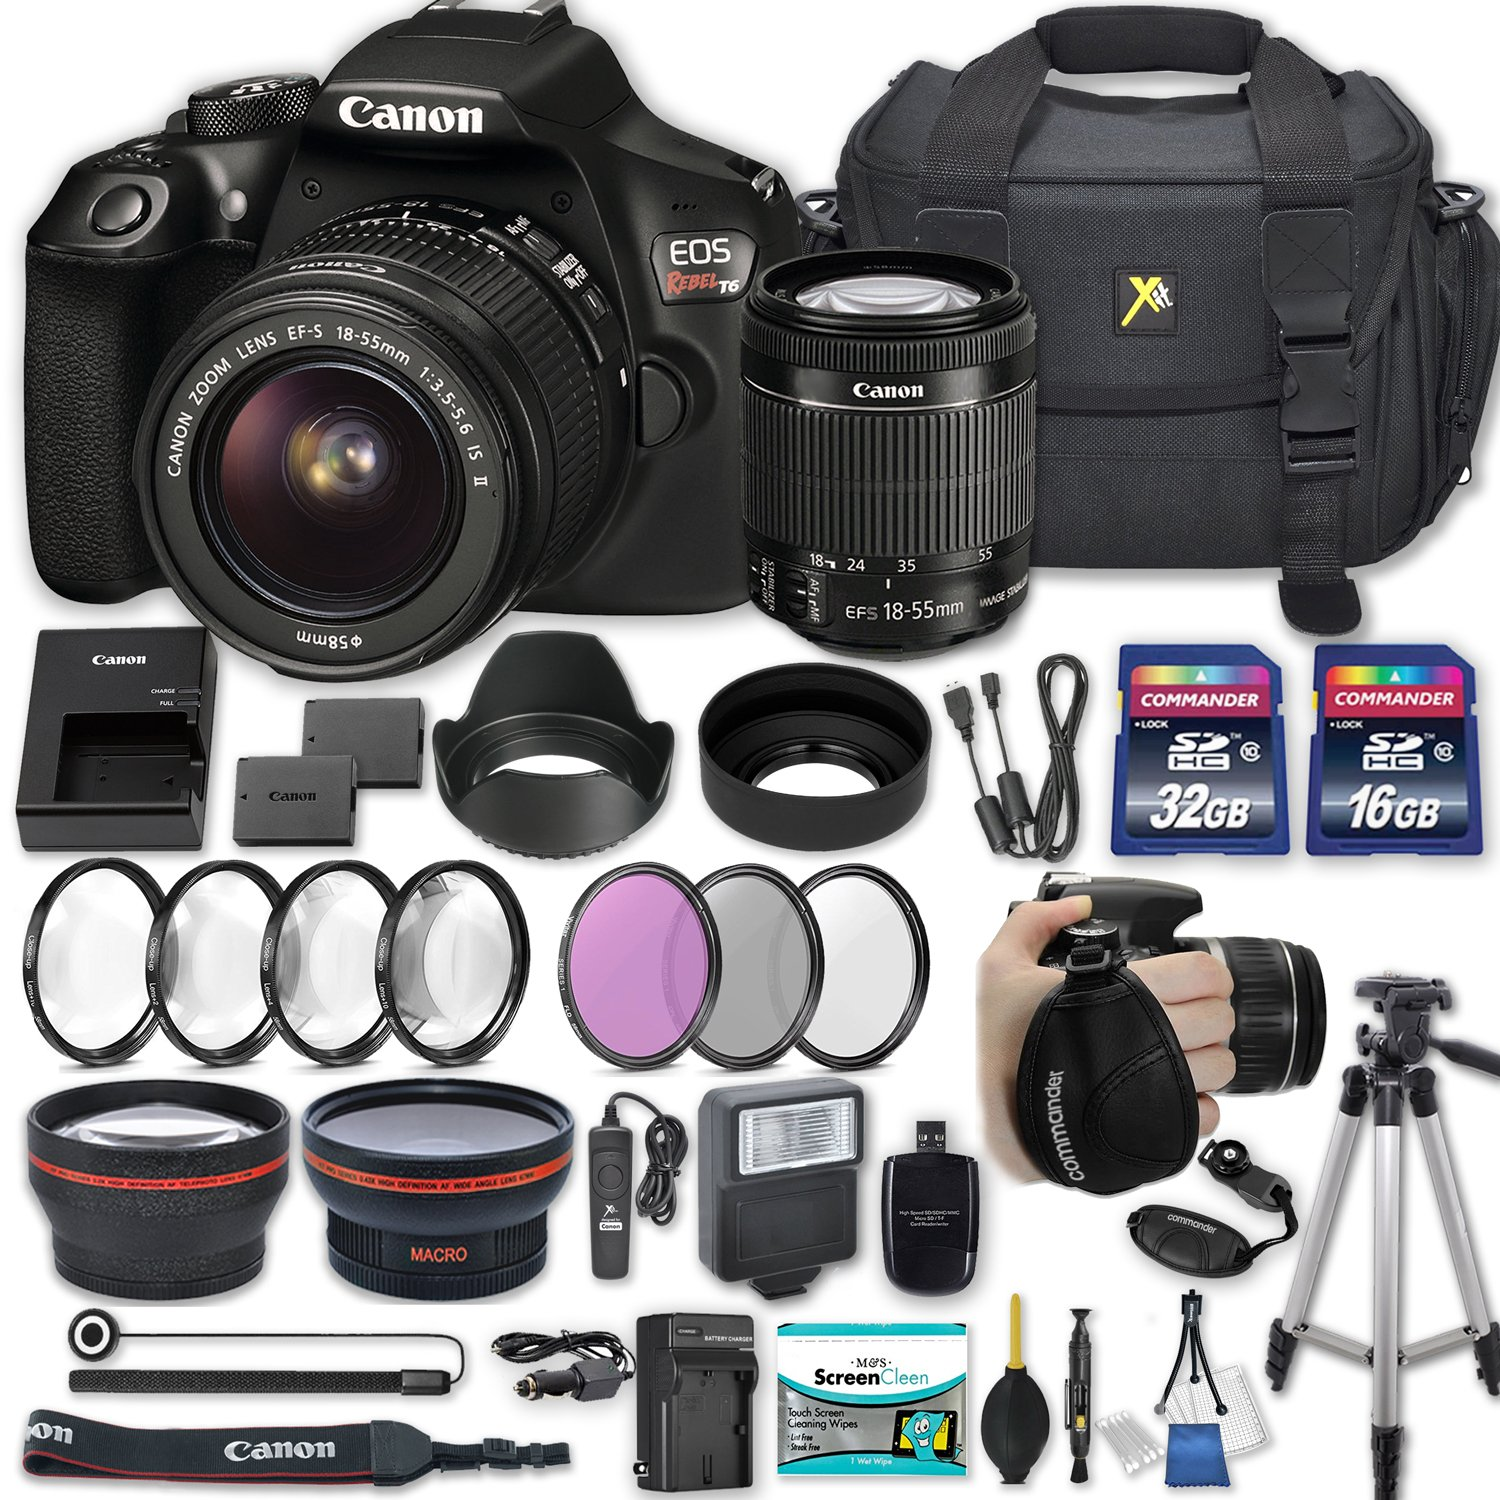 Canon EOS Rebel T6 DSLR Camera with EF-S 18-55mm f/3.5-5.6 IS II Lens + 2 Memory Cards + 2 Auxiliary Lenses + HD Filters + 50'' Tripod + Premium Accessories Bundle (24 Items) by Canon